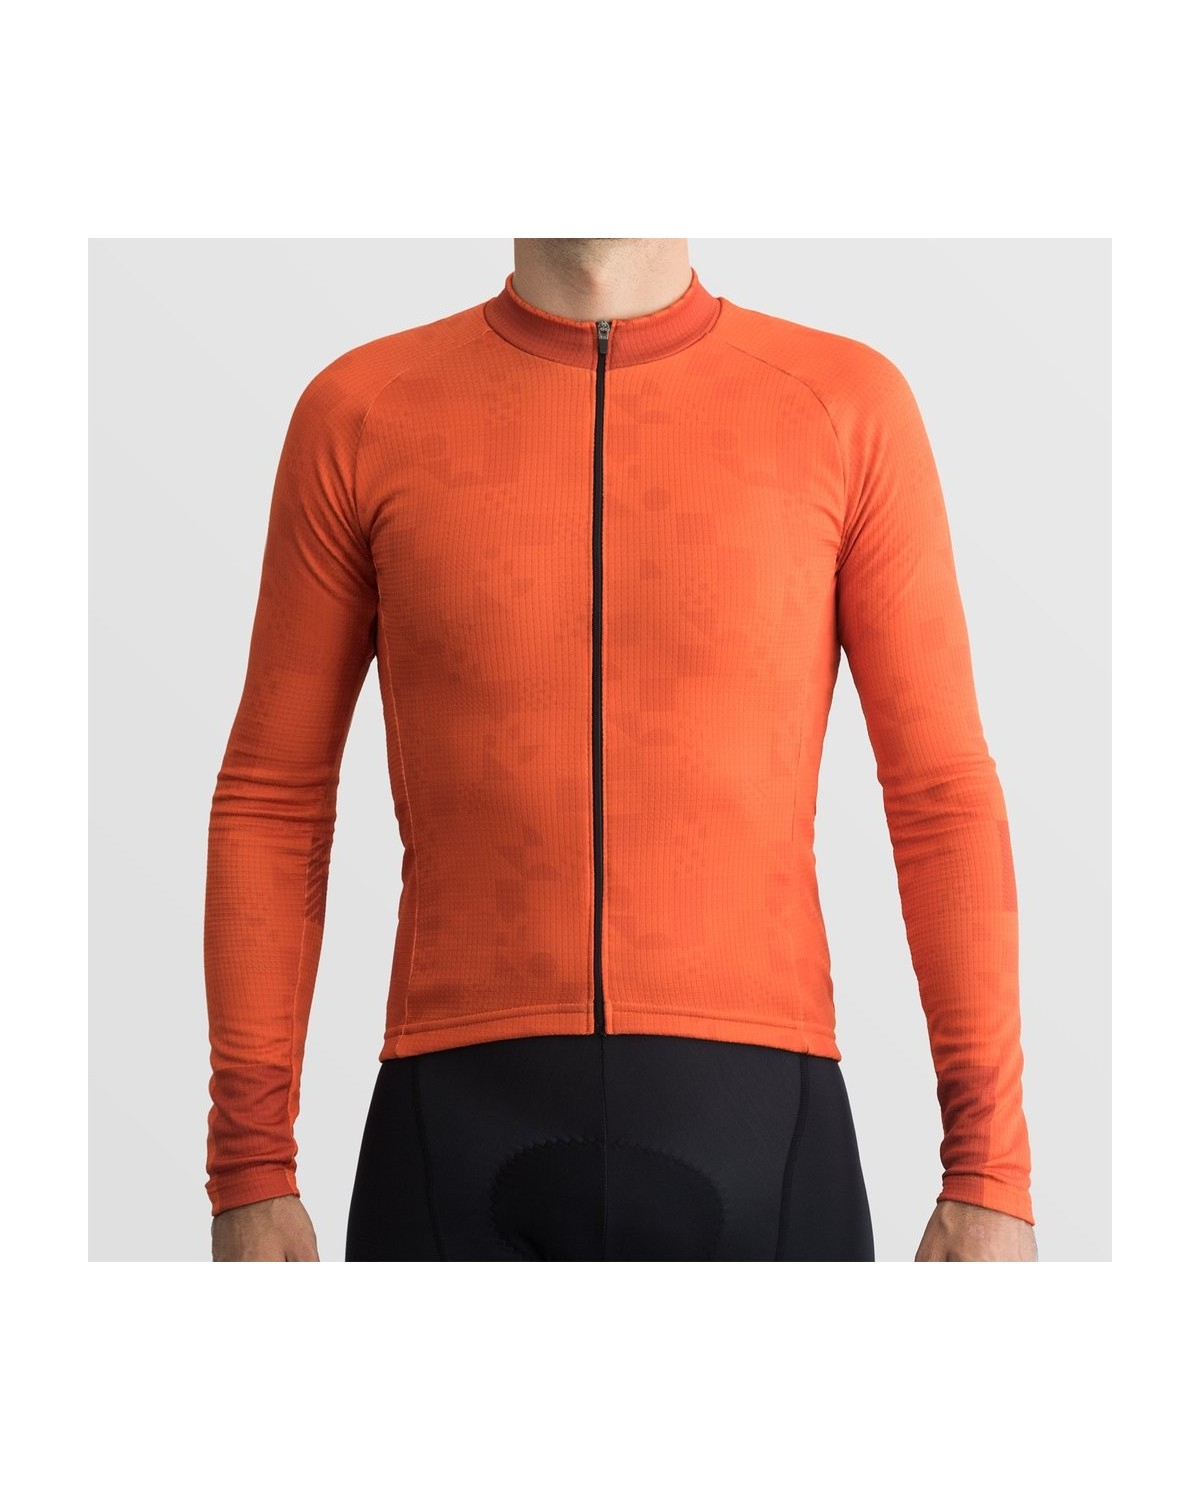 Ornot Code Thermal Radtrikot Langarm Orange